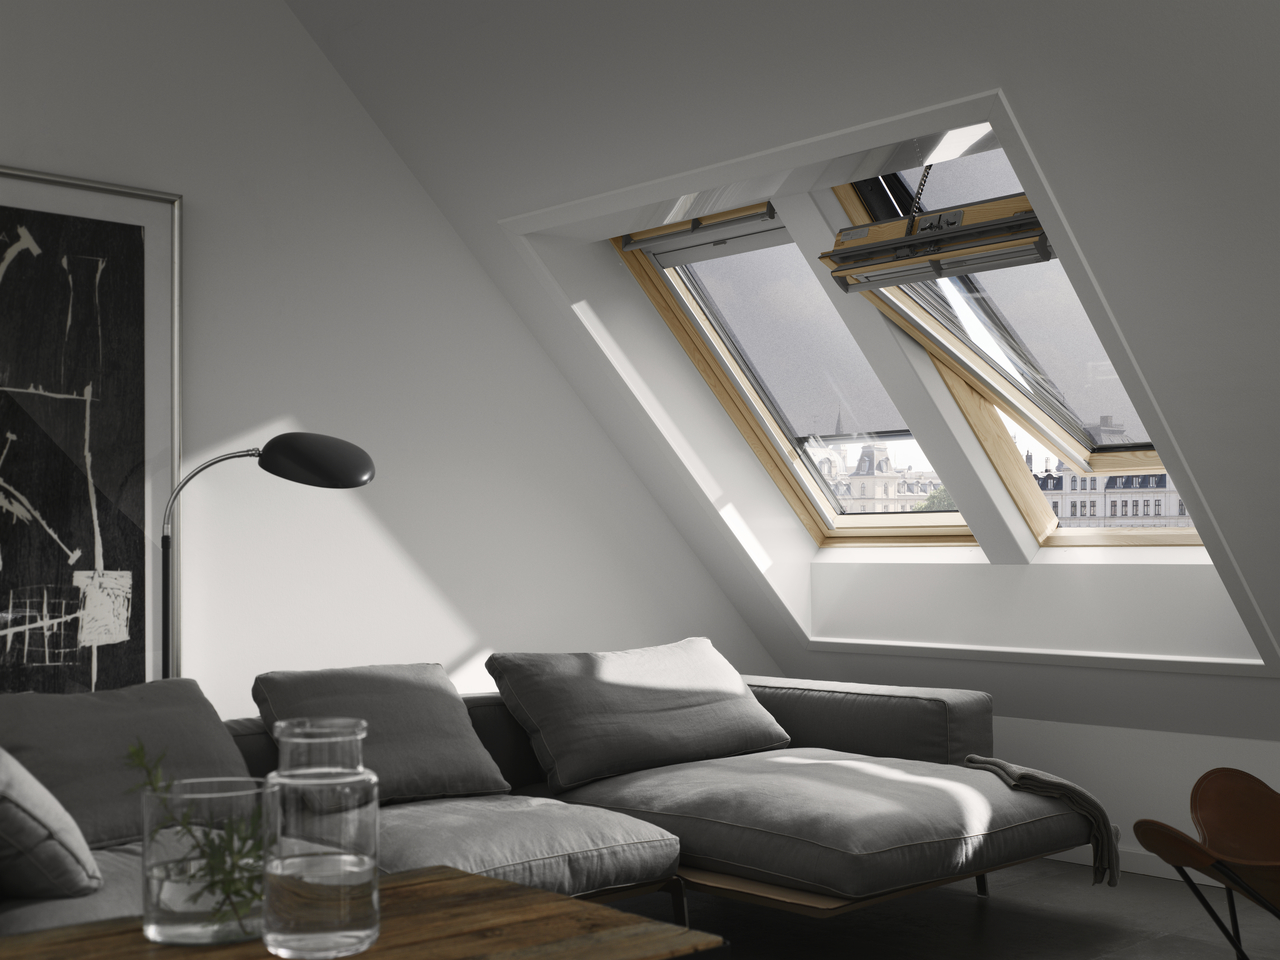 dachfenster velux ggl 3066 integra. Black Bedroom Furniture Sets. Home Design Ideas